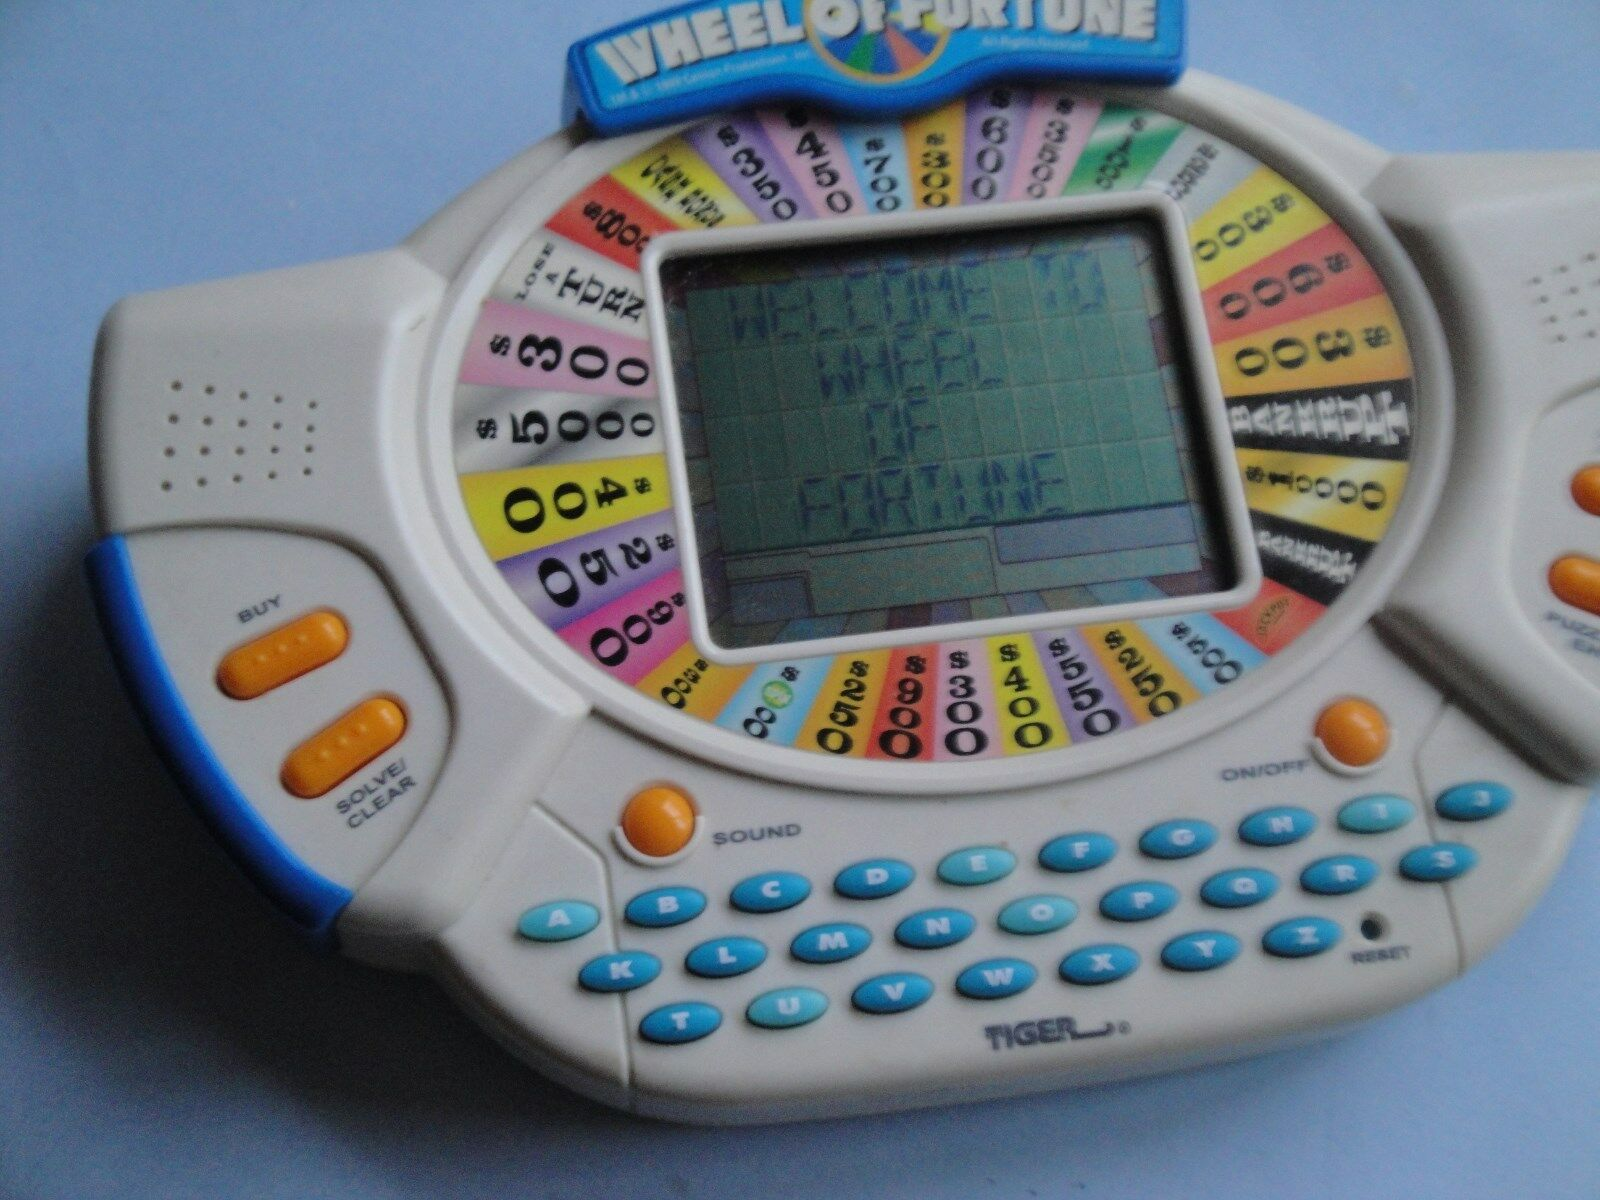 Tiger Handheld Electronic WHEEL OF FORTUNE 1998 With Expansion Cartridge.